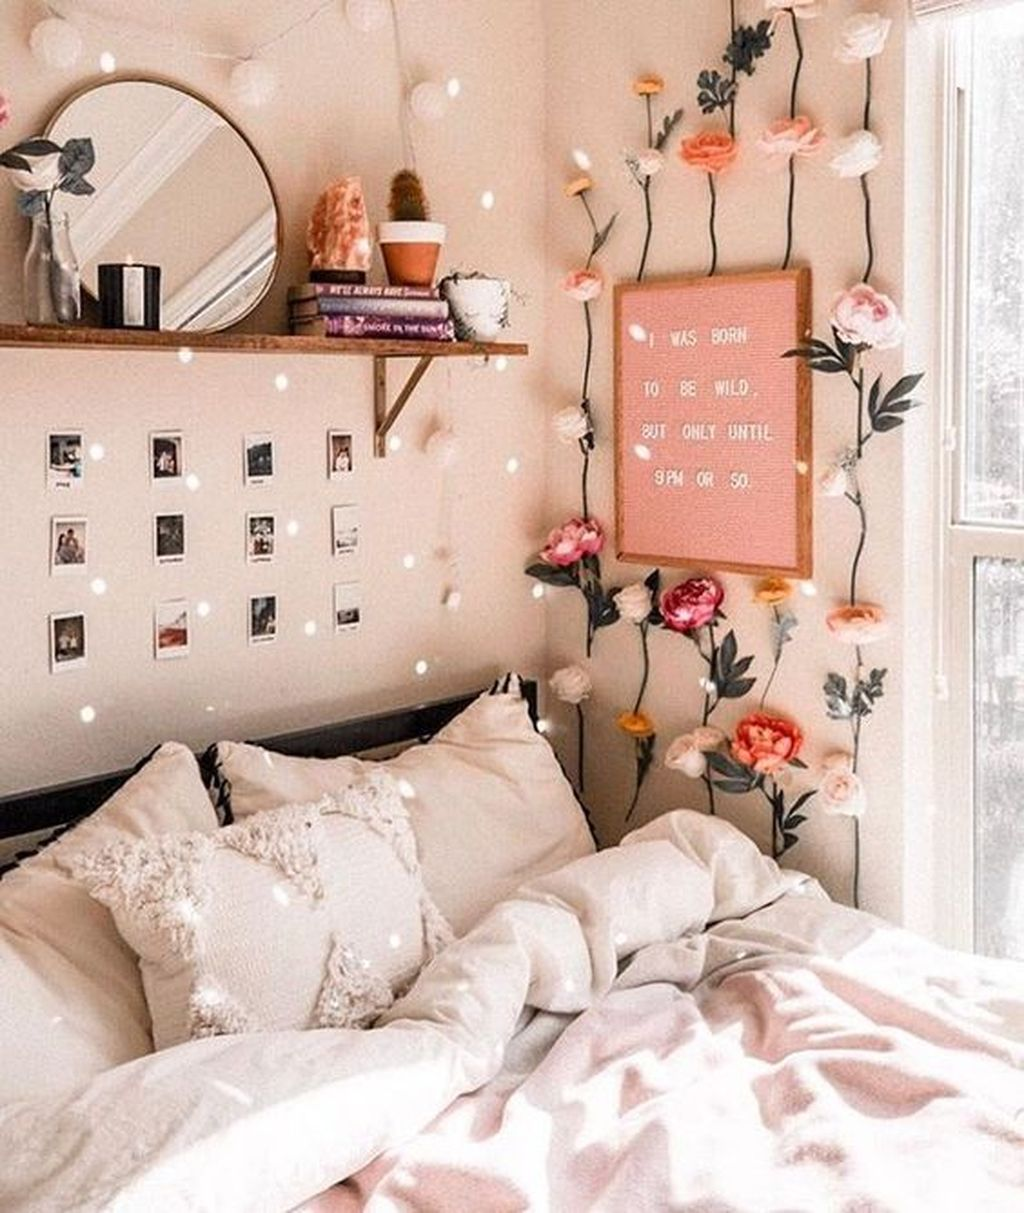 The Best DIY Bedroom Decor Ideas You Have To Try 18